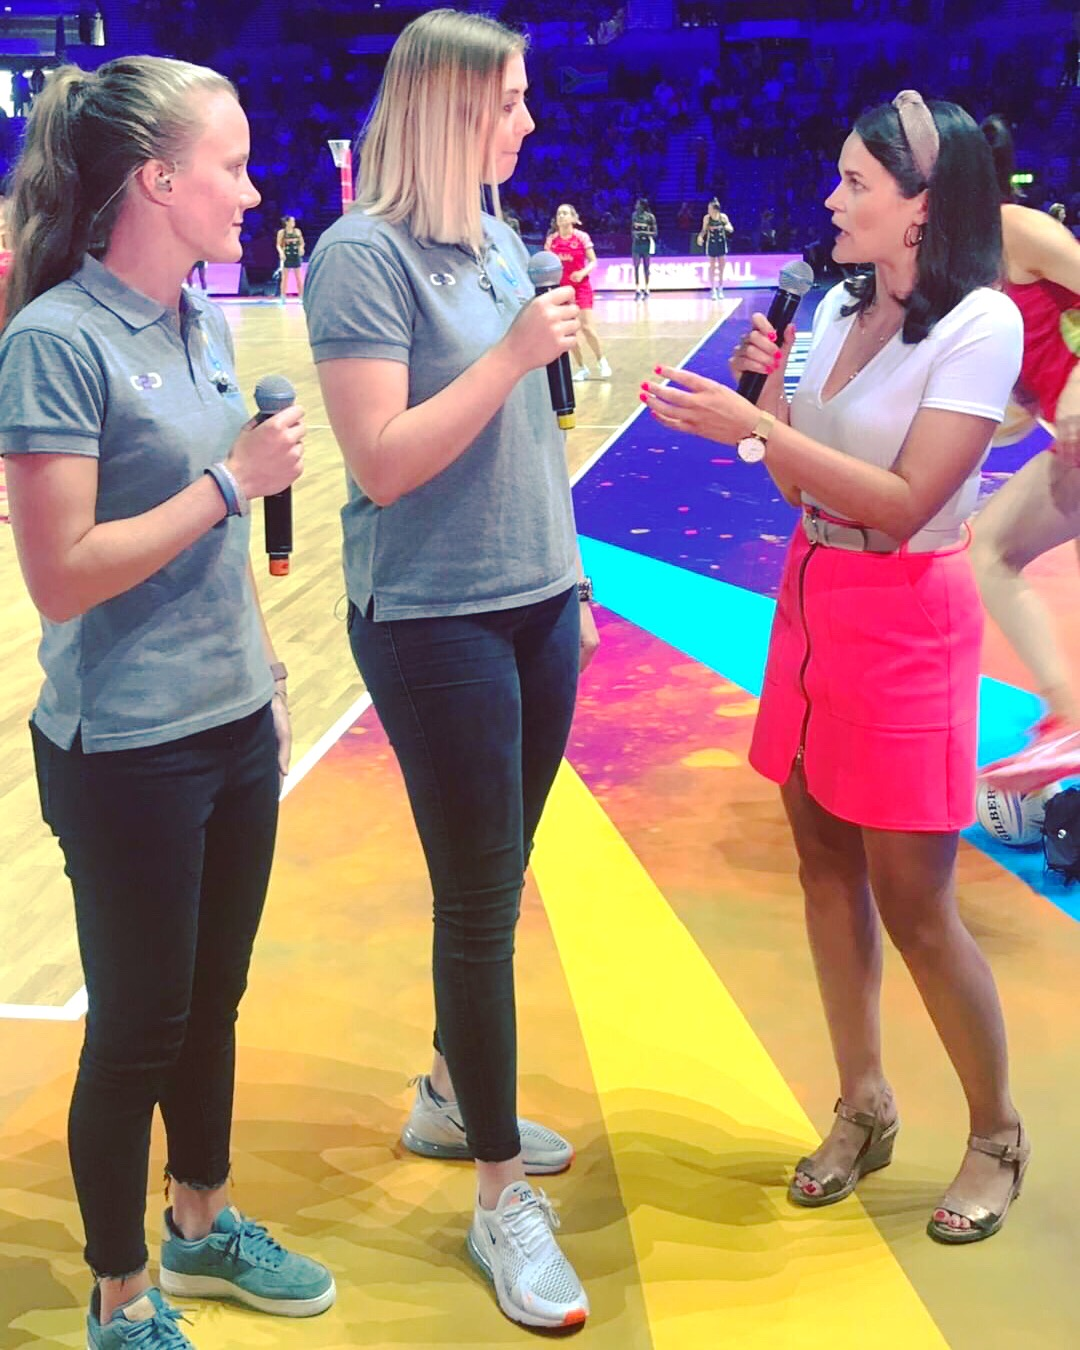 England team players Gabby Marshall and Ellie Cadwell joining me courtside